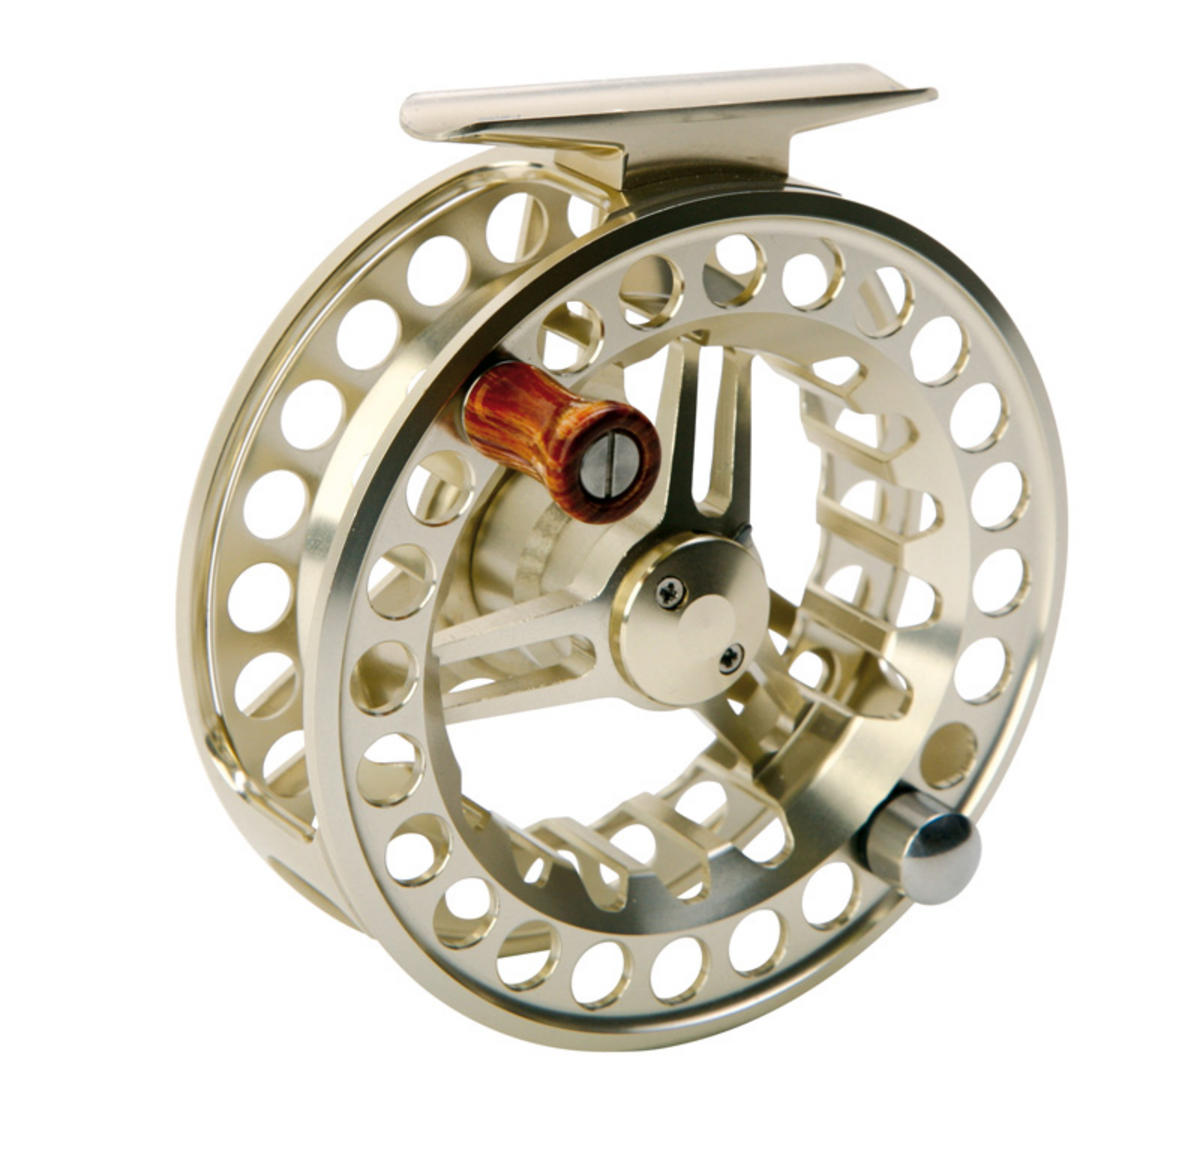 DAIWA LOCHMOR SLA 5/6 Model No LMSLA56 LARGE ARBOR FLY REEL